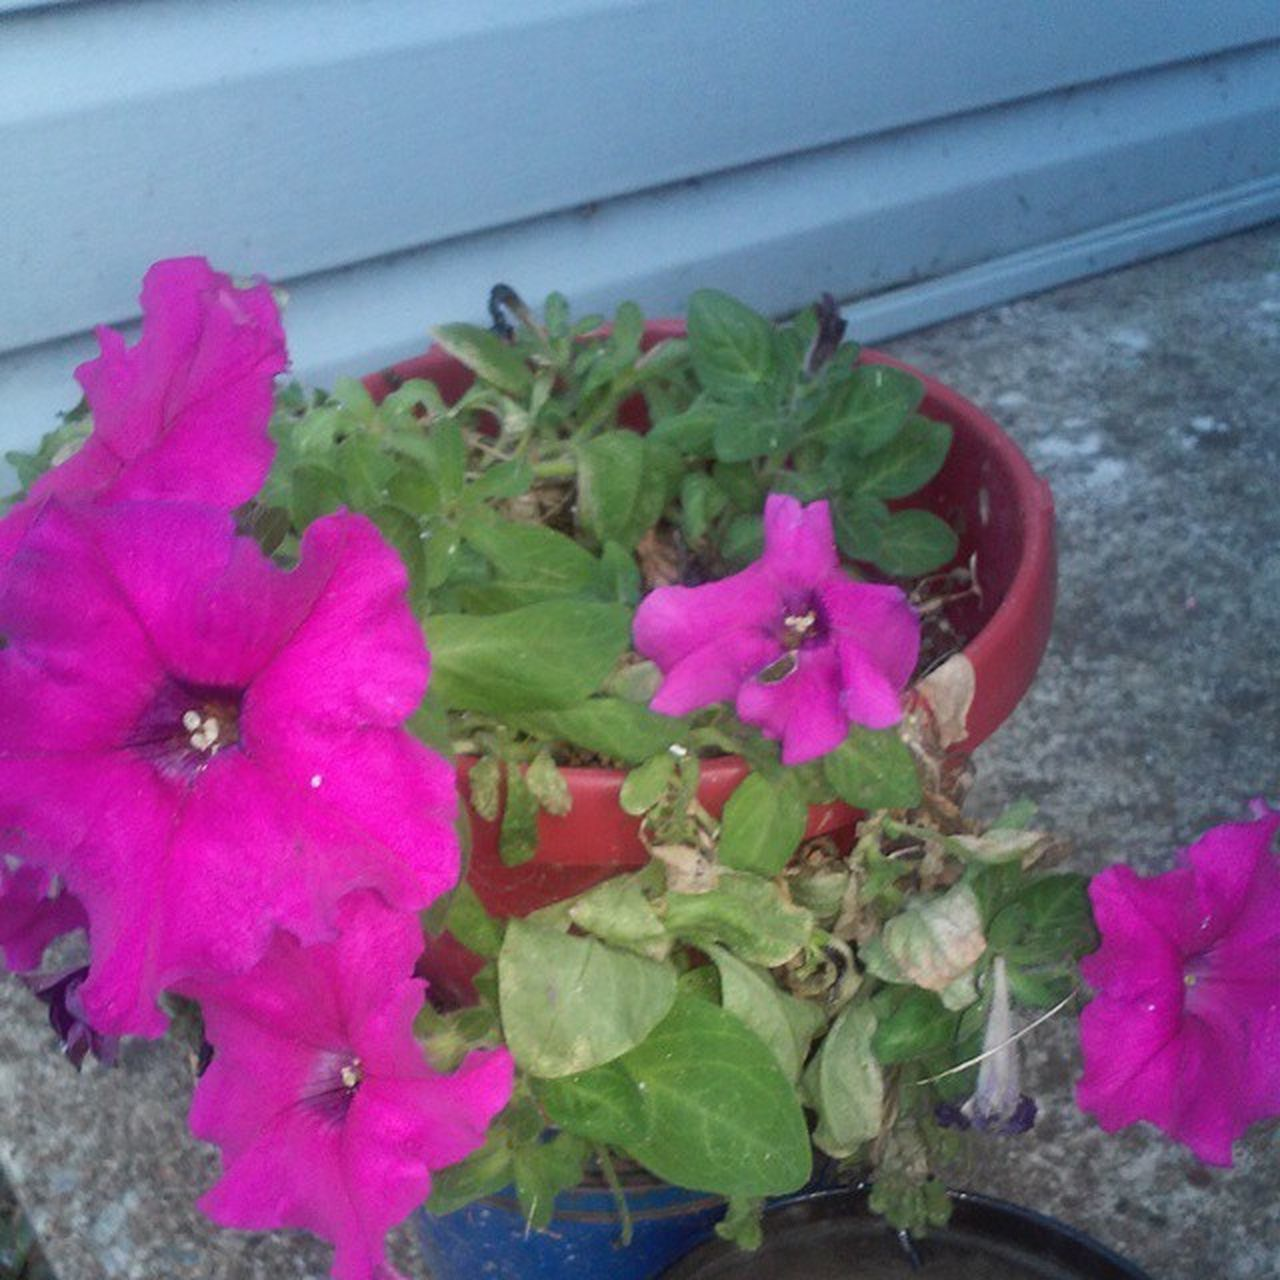 flower, plant, growth, pink color, petal, fragility, leaf, nature, beauty in nature, freshness, flower head, blooming, potted plant, outdoors, no people, day, petunia, periwinkle, close-up